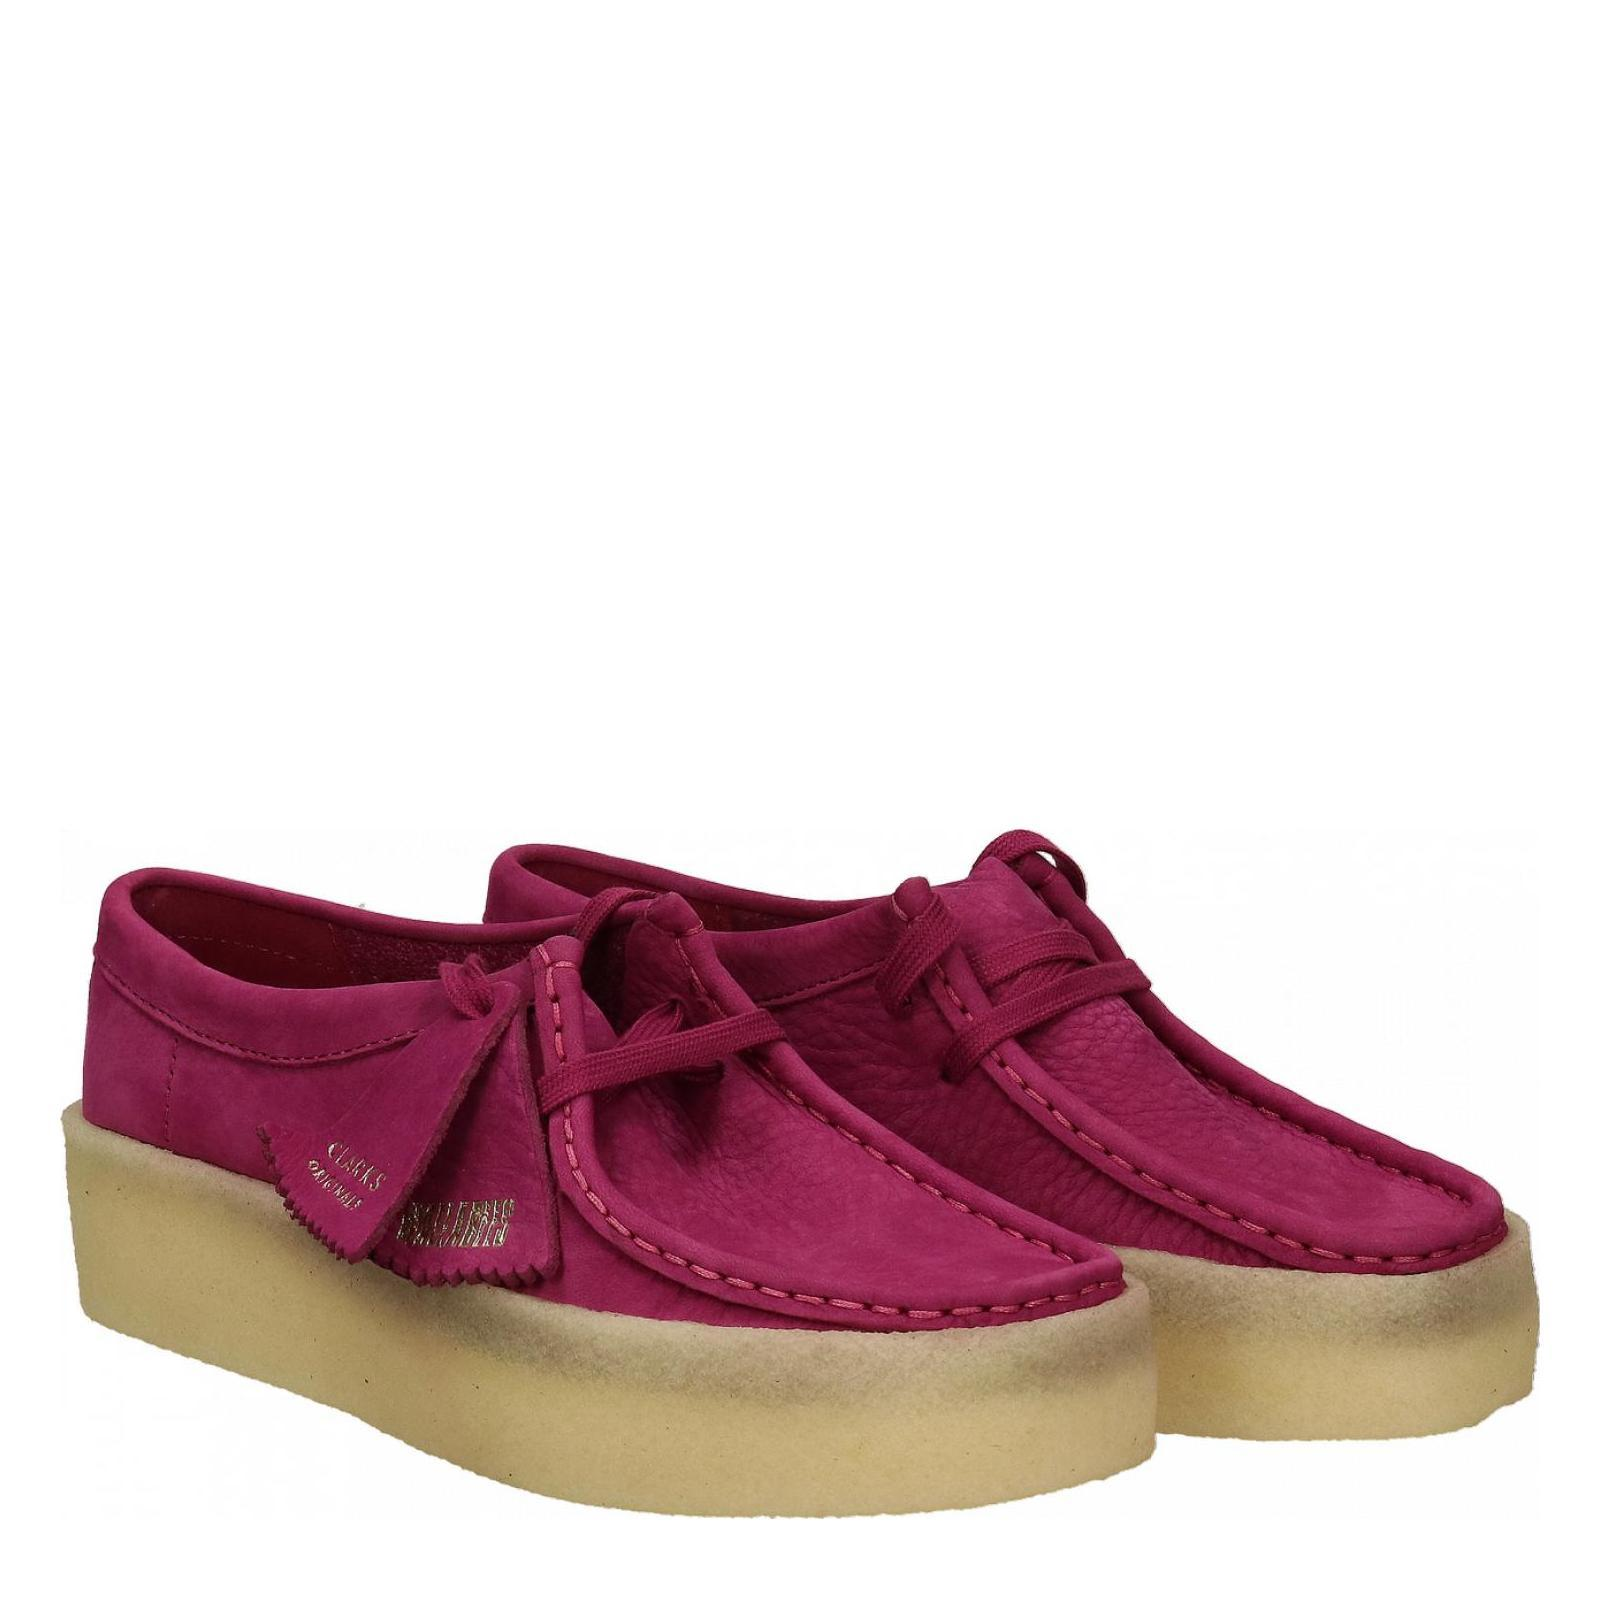 WALLABEE CUP